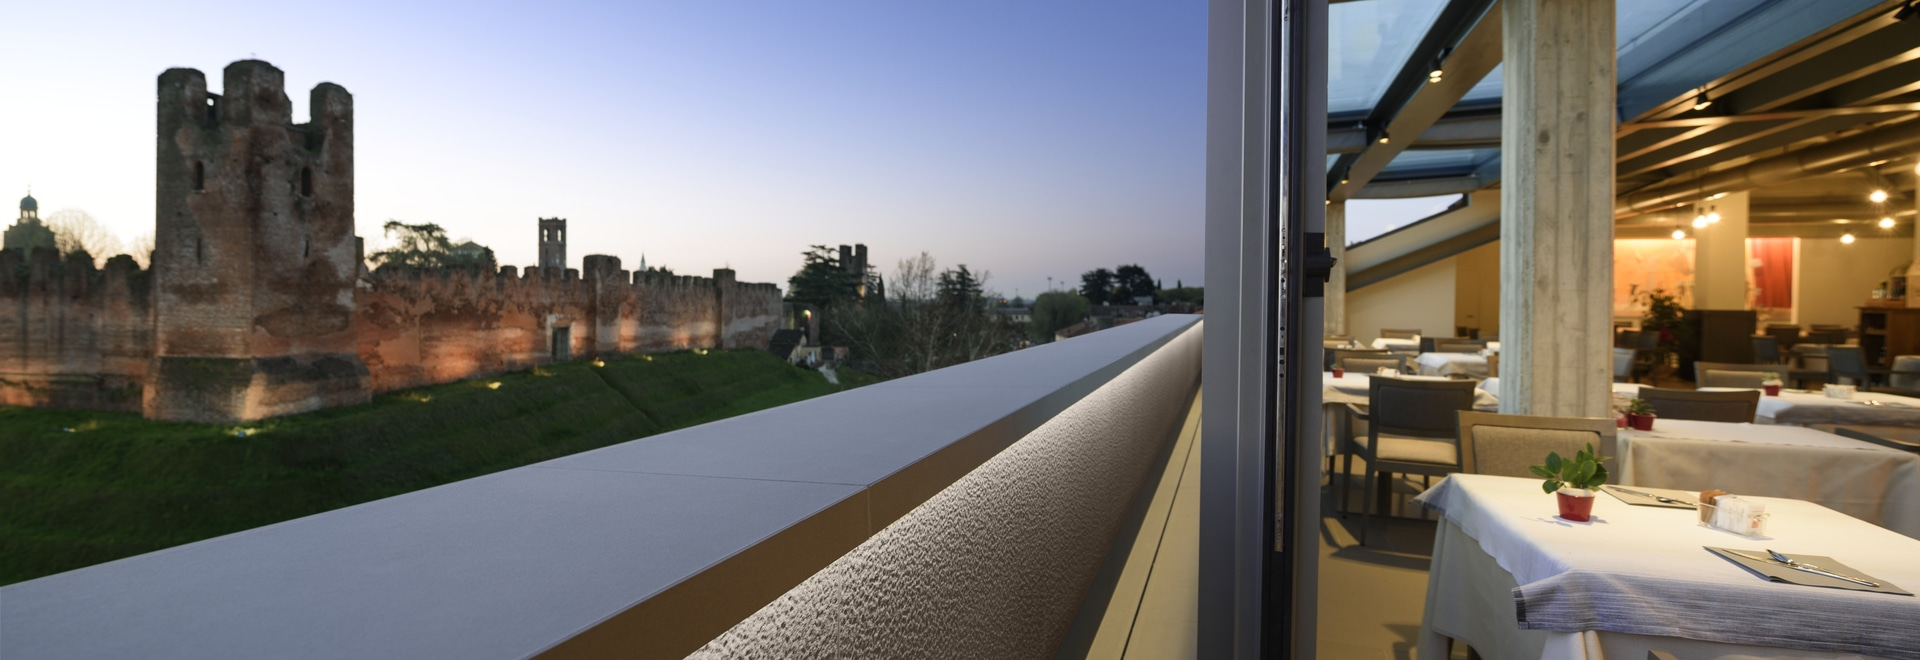 The versatility of Lapitec® for a hotel in Castelfranco Veneto